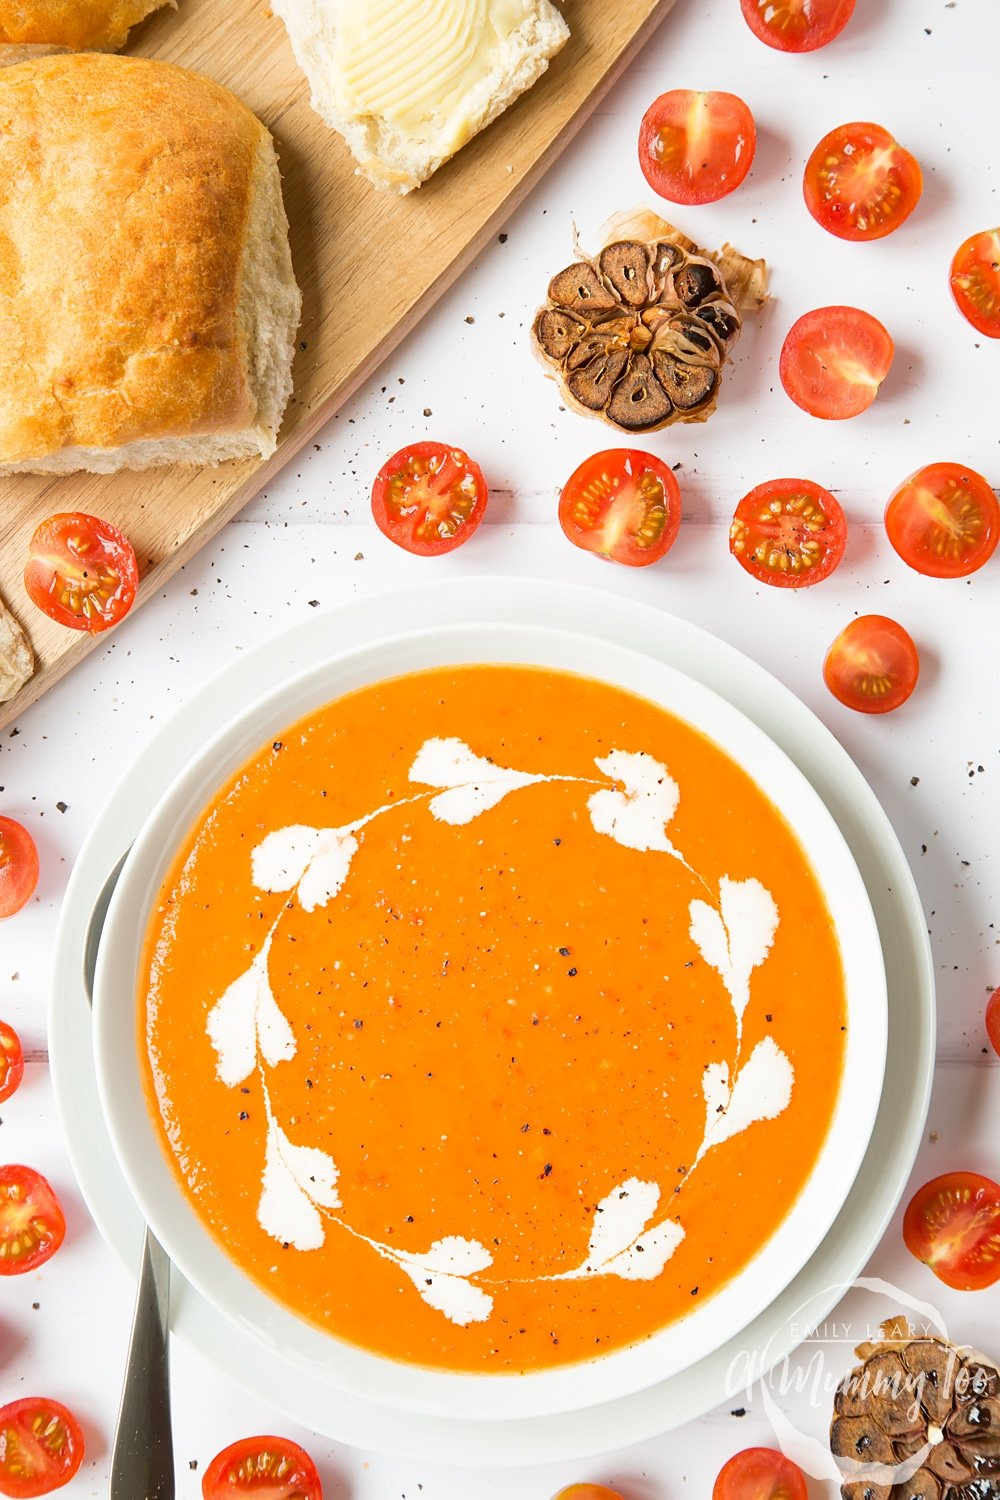 A bowl of delicious roasted tomato and garlic soup